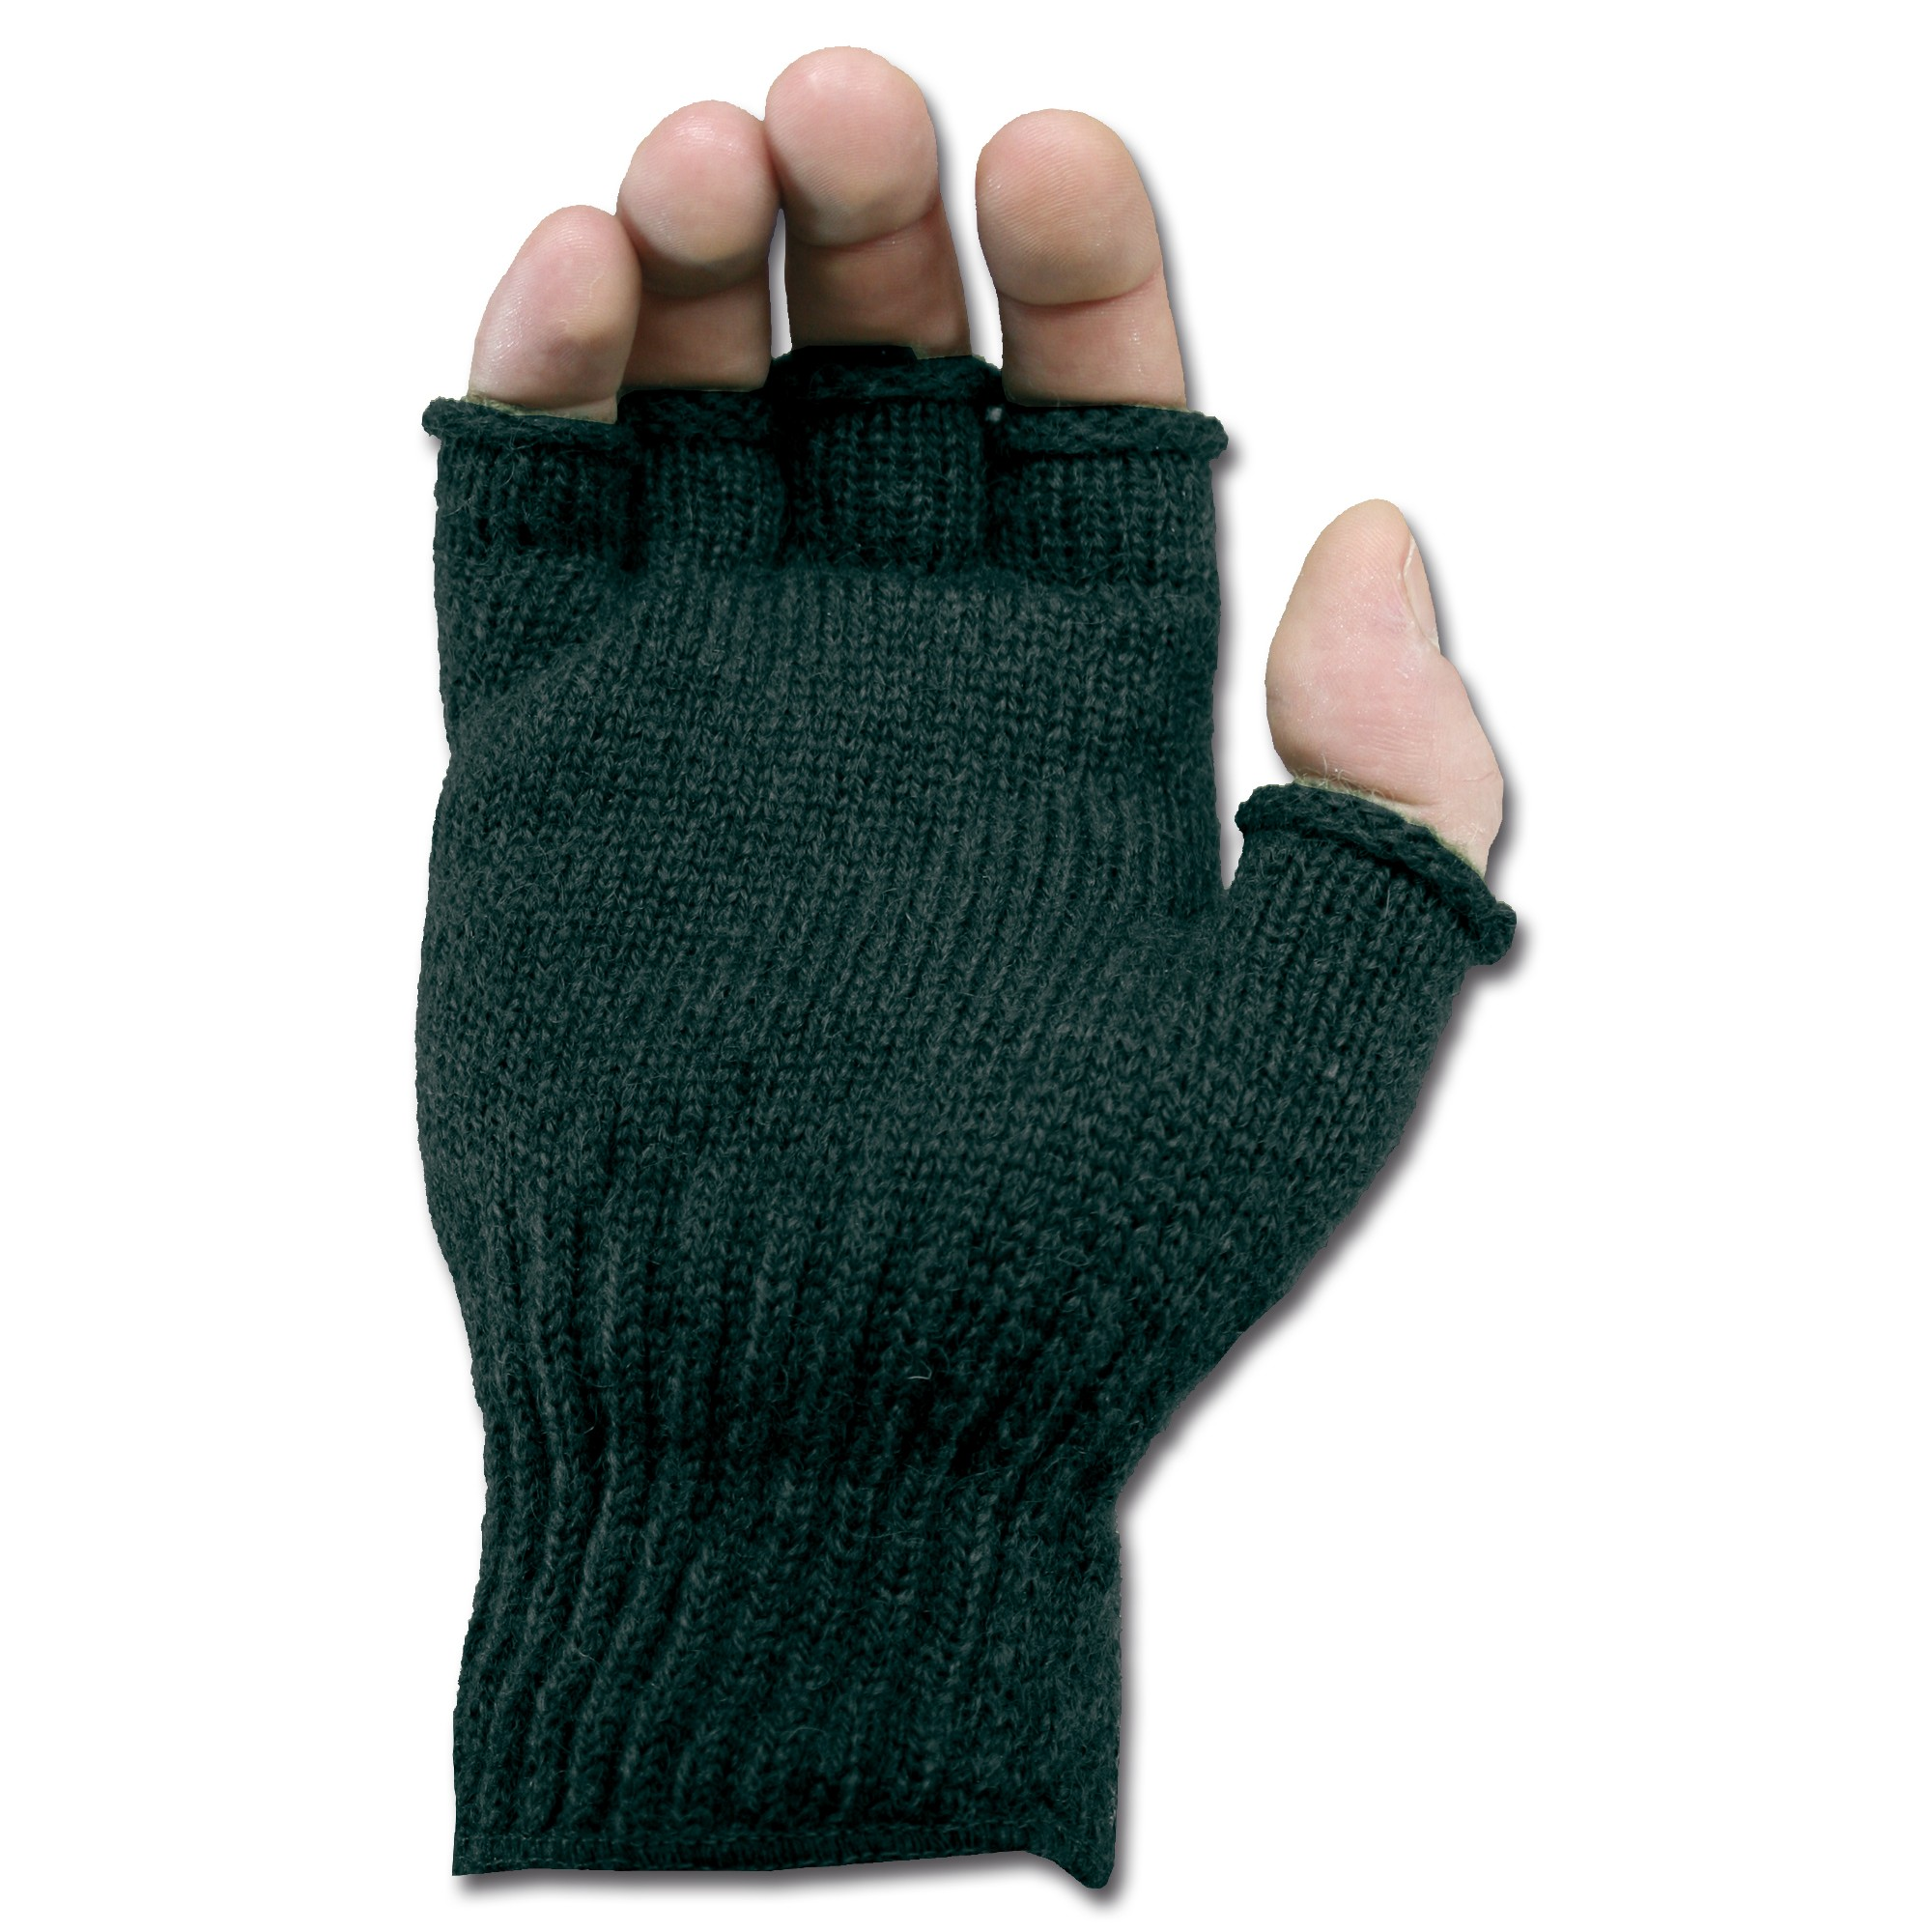 U. S. Fingerless Wool Gloves black